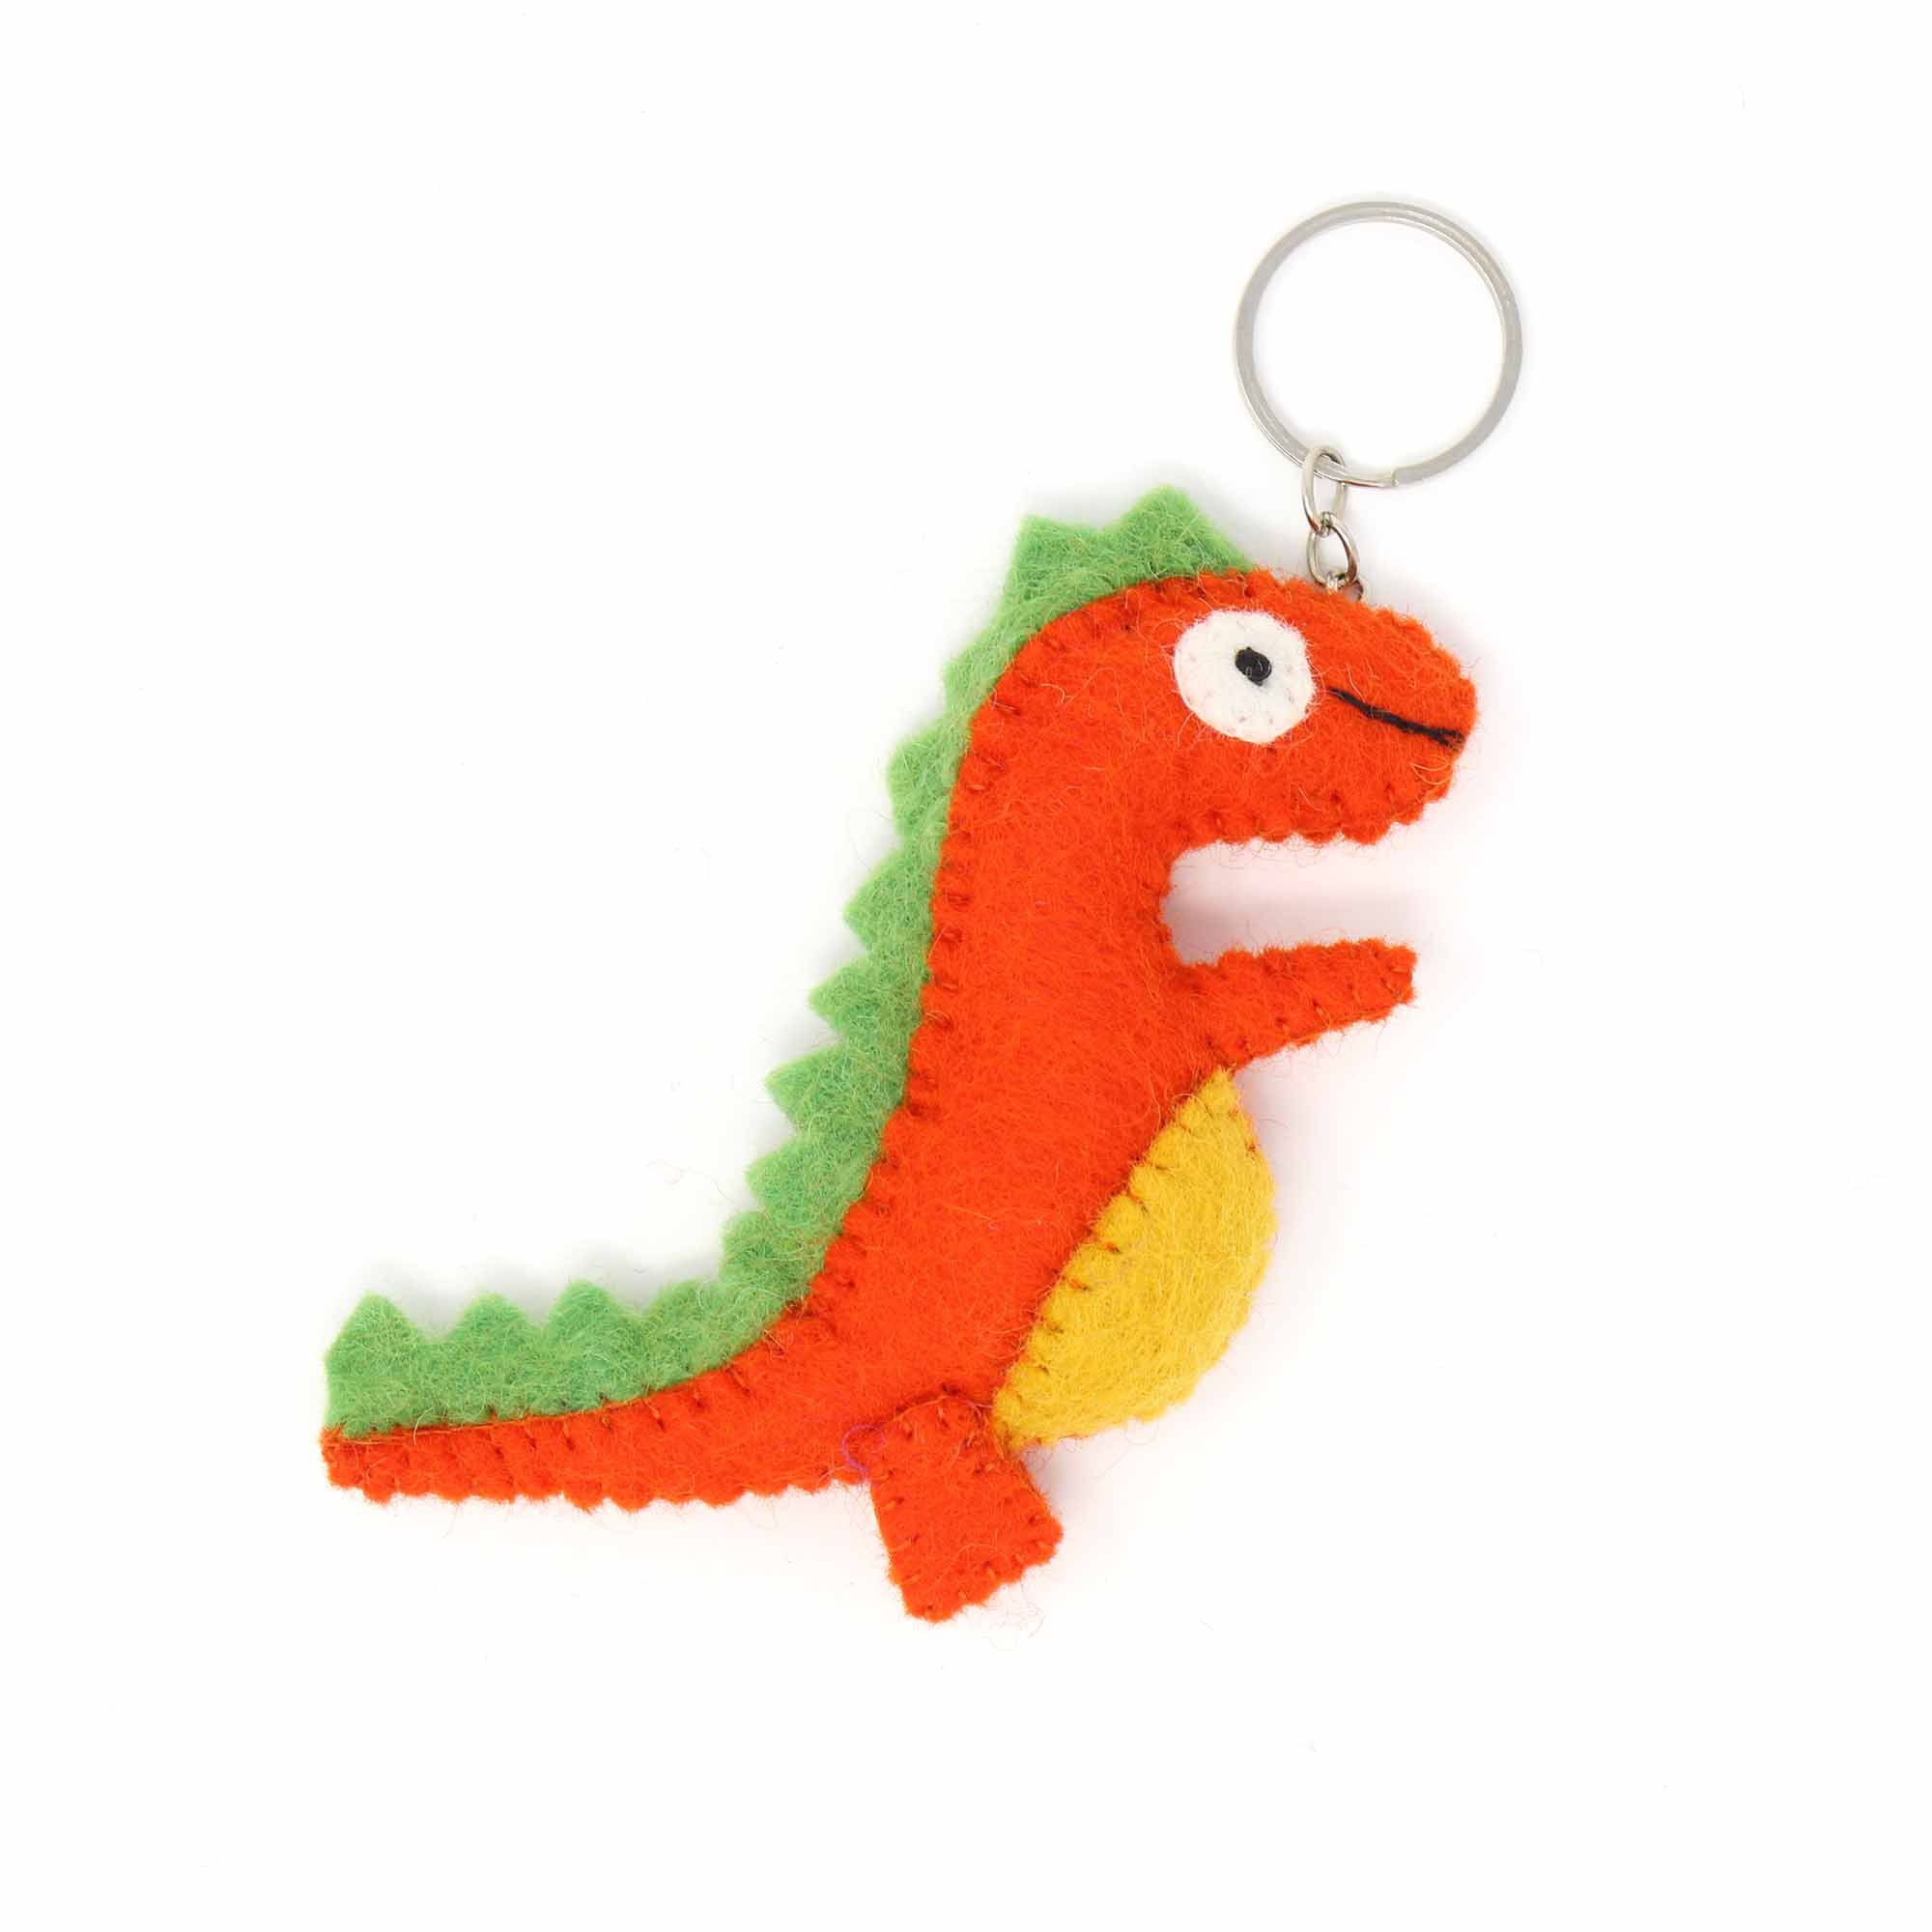 Hand Crafted Felt Keychain from Nepal: T-Rex, Green